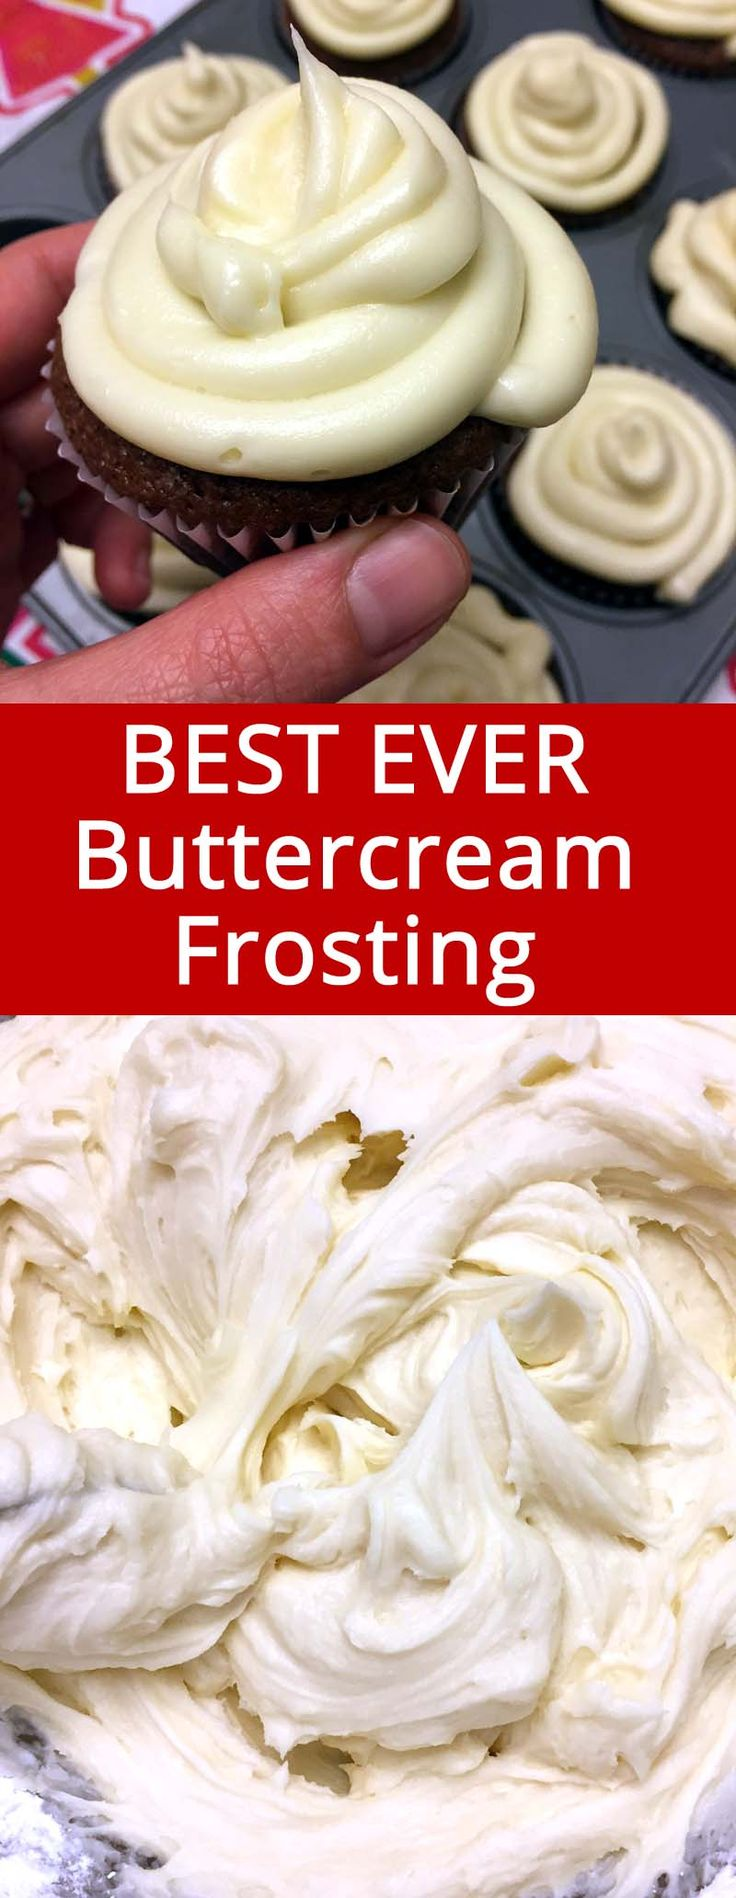 This homemade vanilla buttercream frosting is the best ever! I'll never have store-bought frosting ever again!